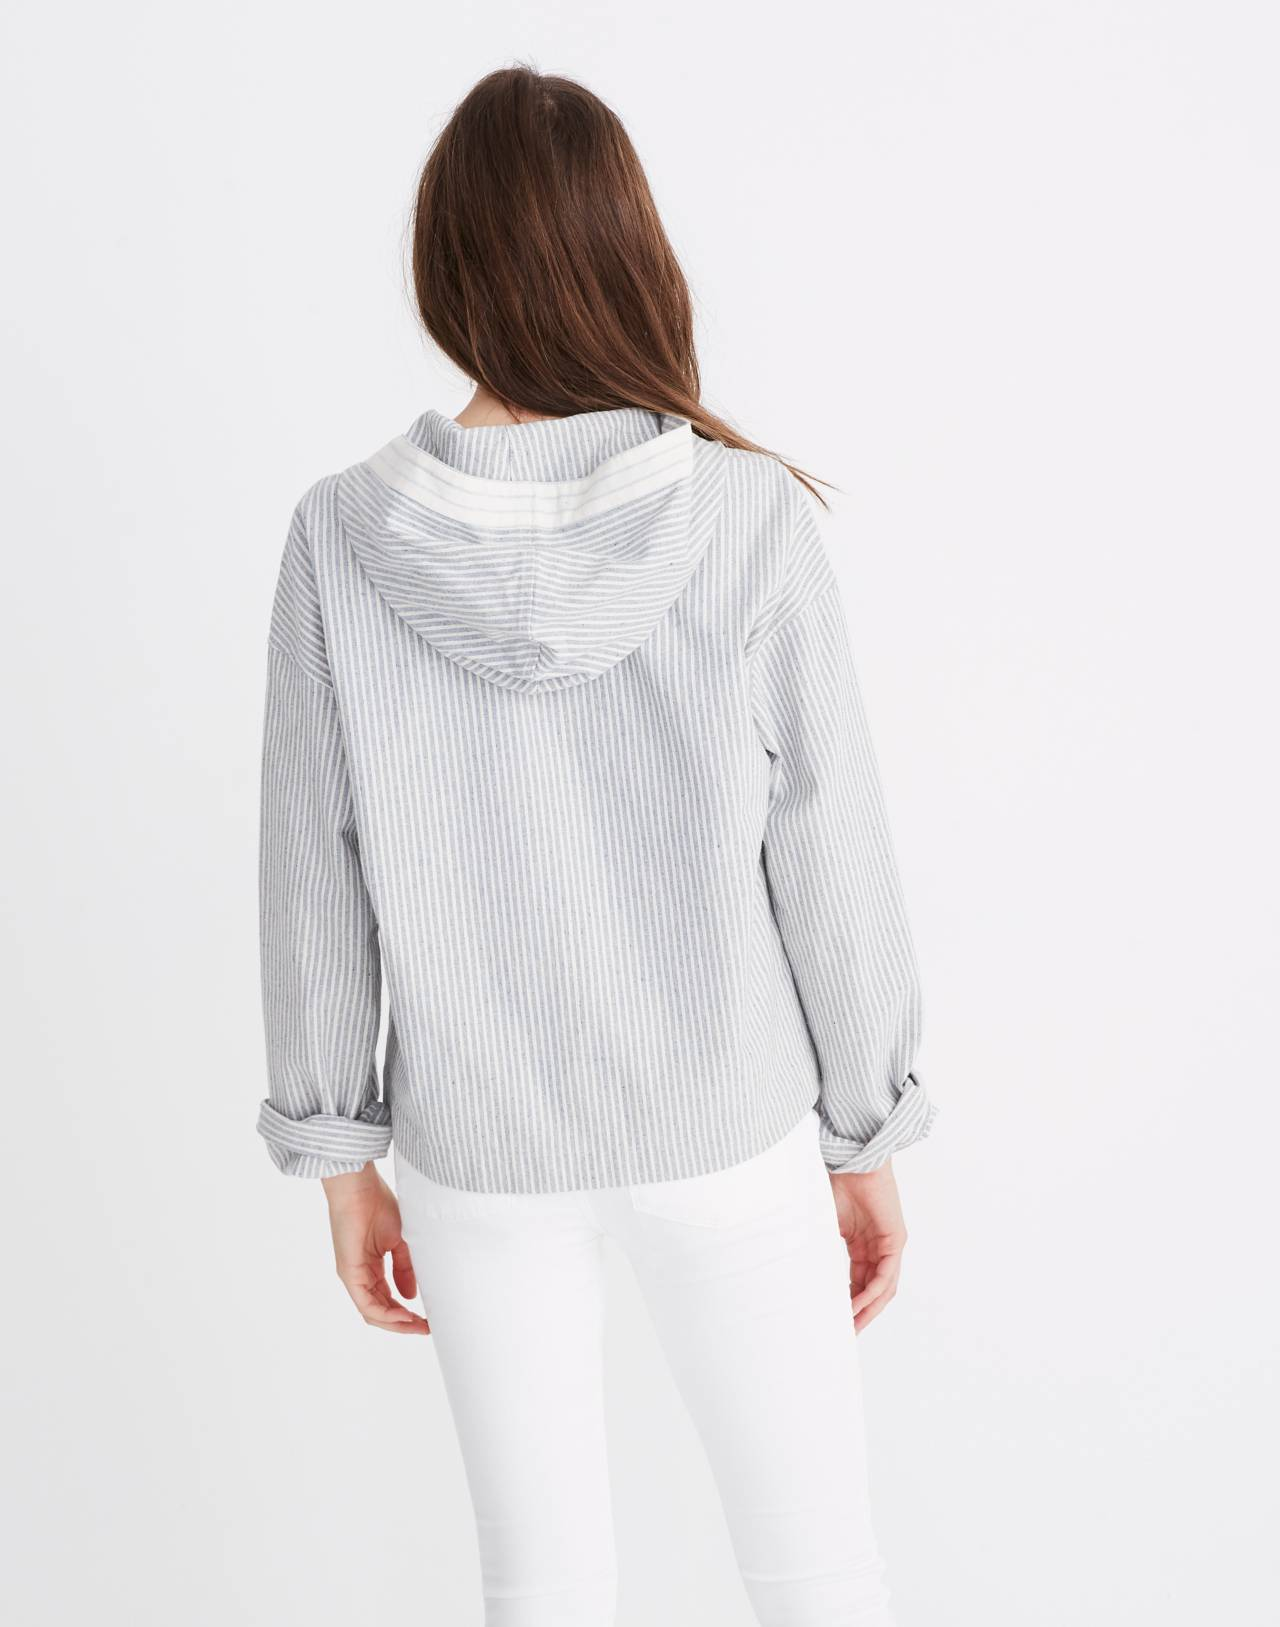 Madewell x The New Denim Project® Patchwork Popover Hoodie in blue railroad stripe image 3